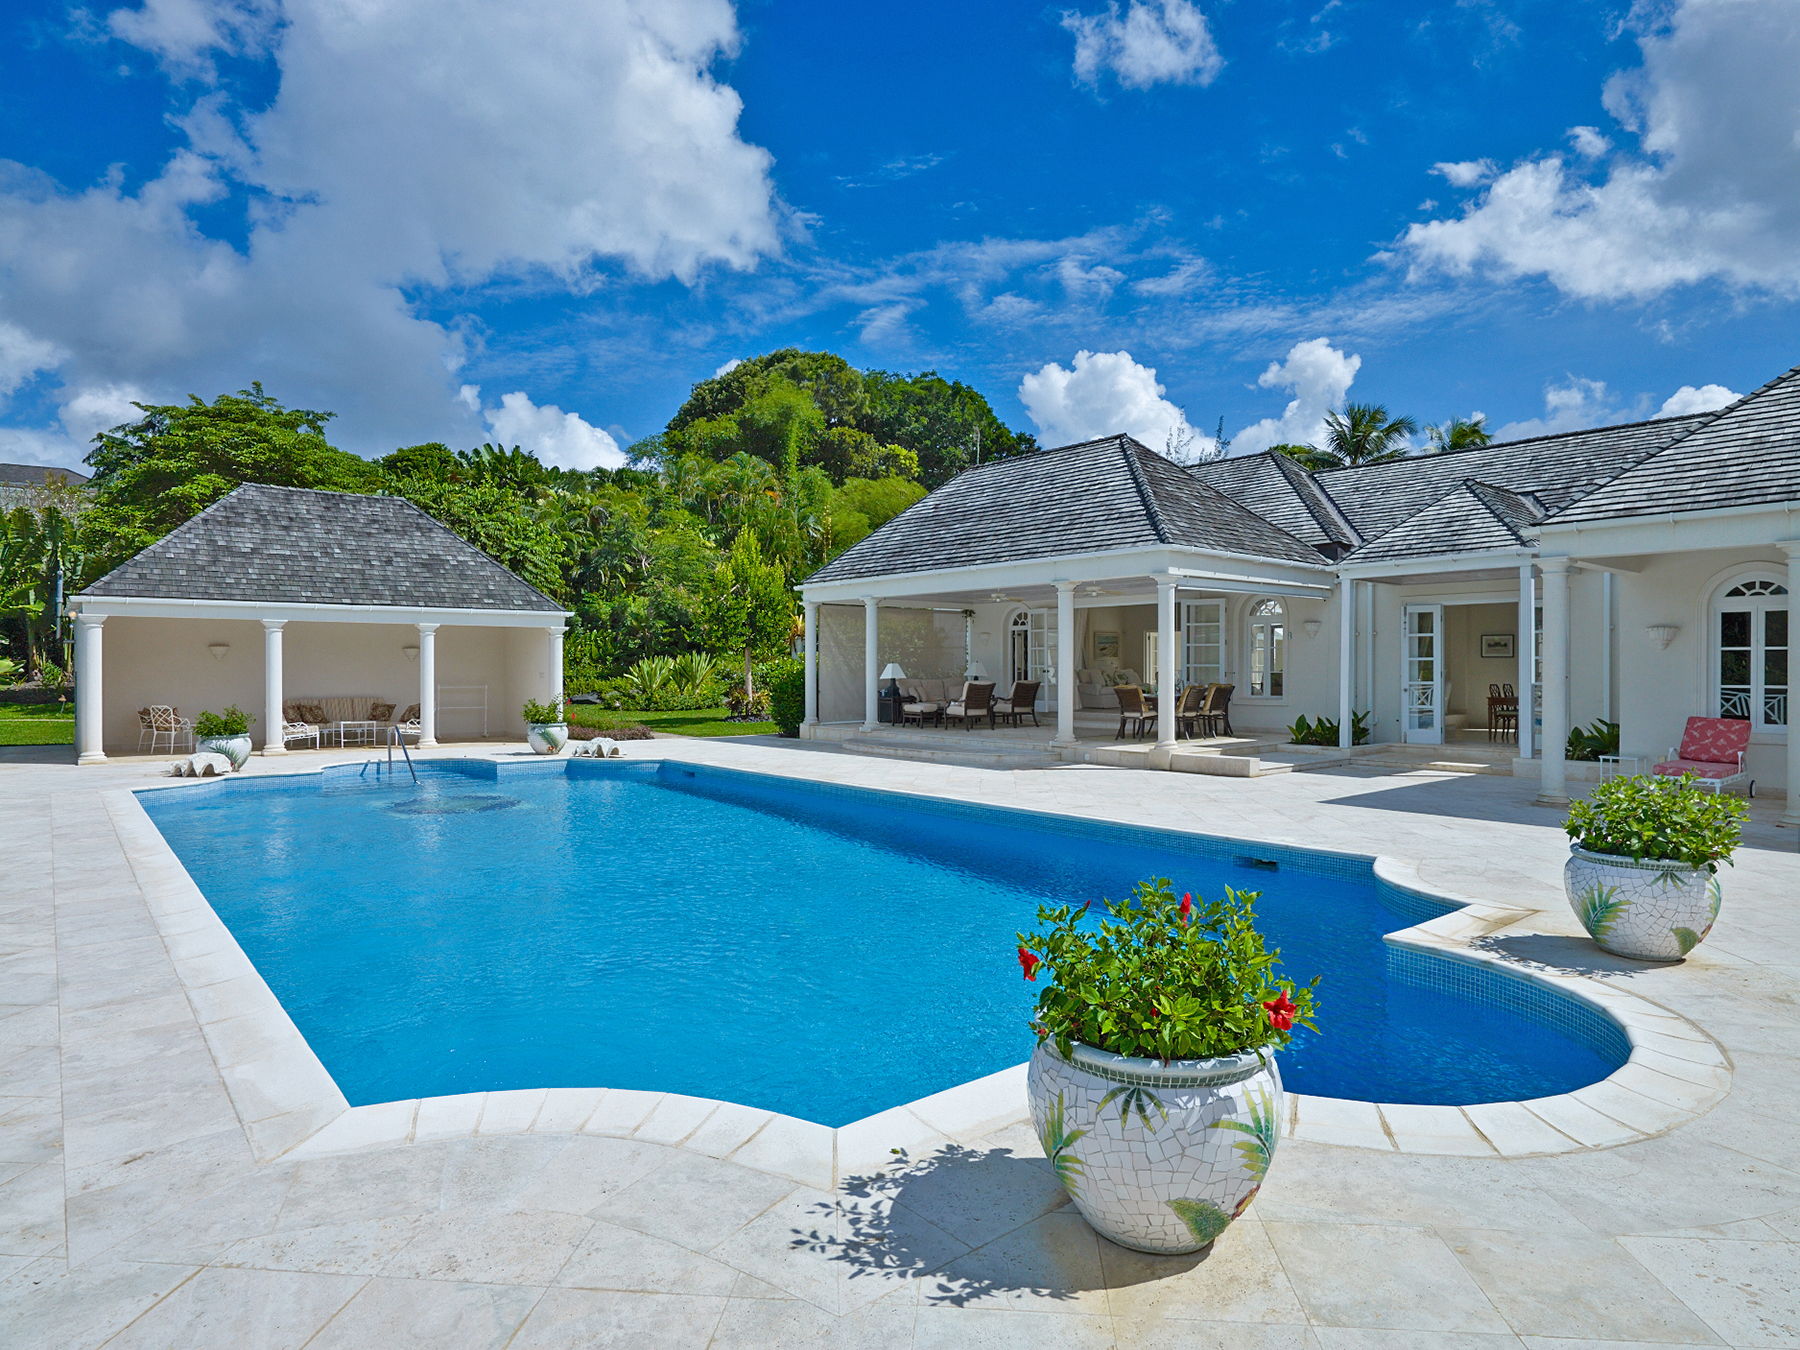 Other Residential for Sale at Chummery Estate Other Saint James, Saint James, Barbados